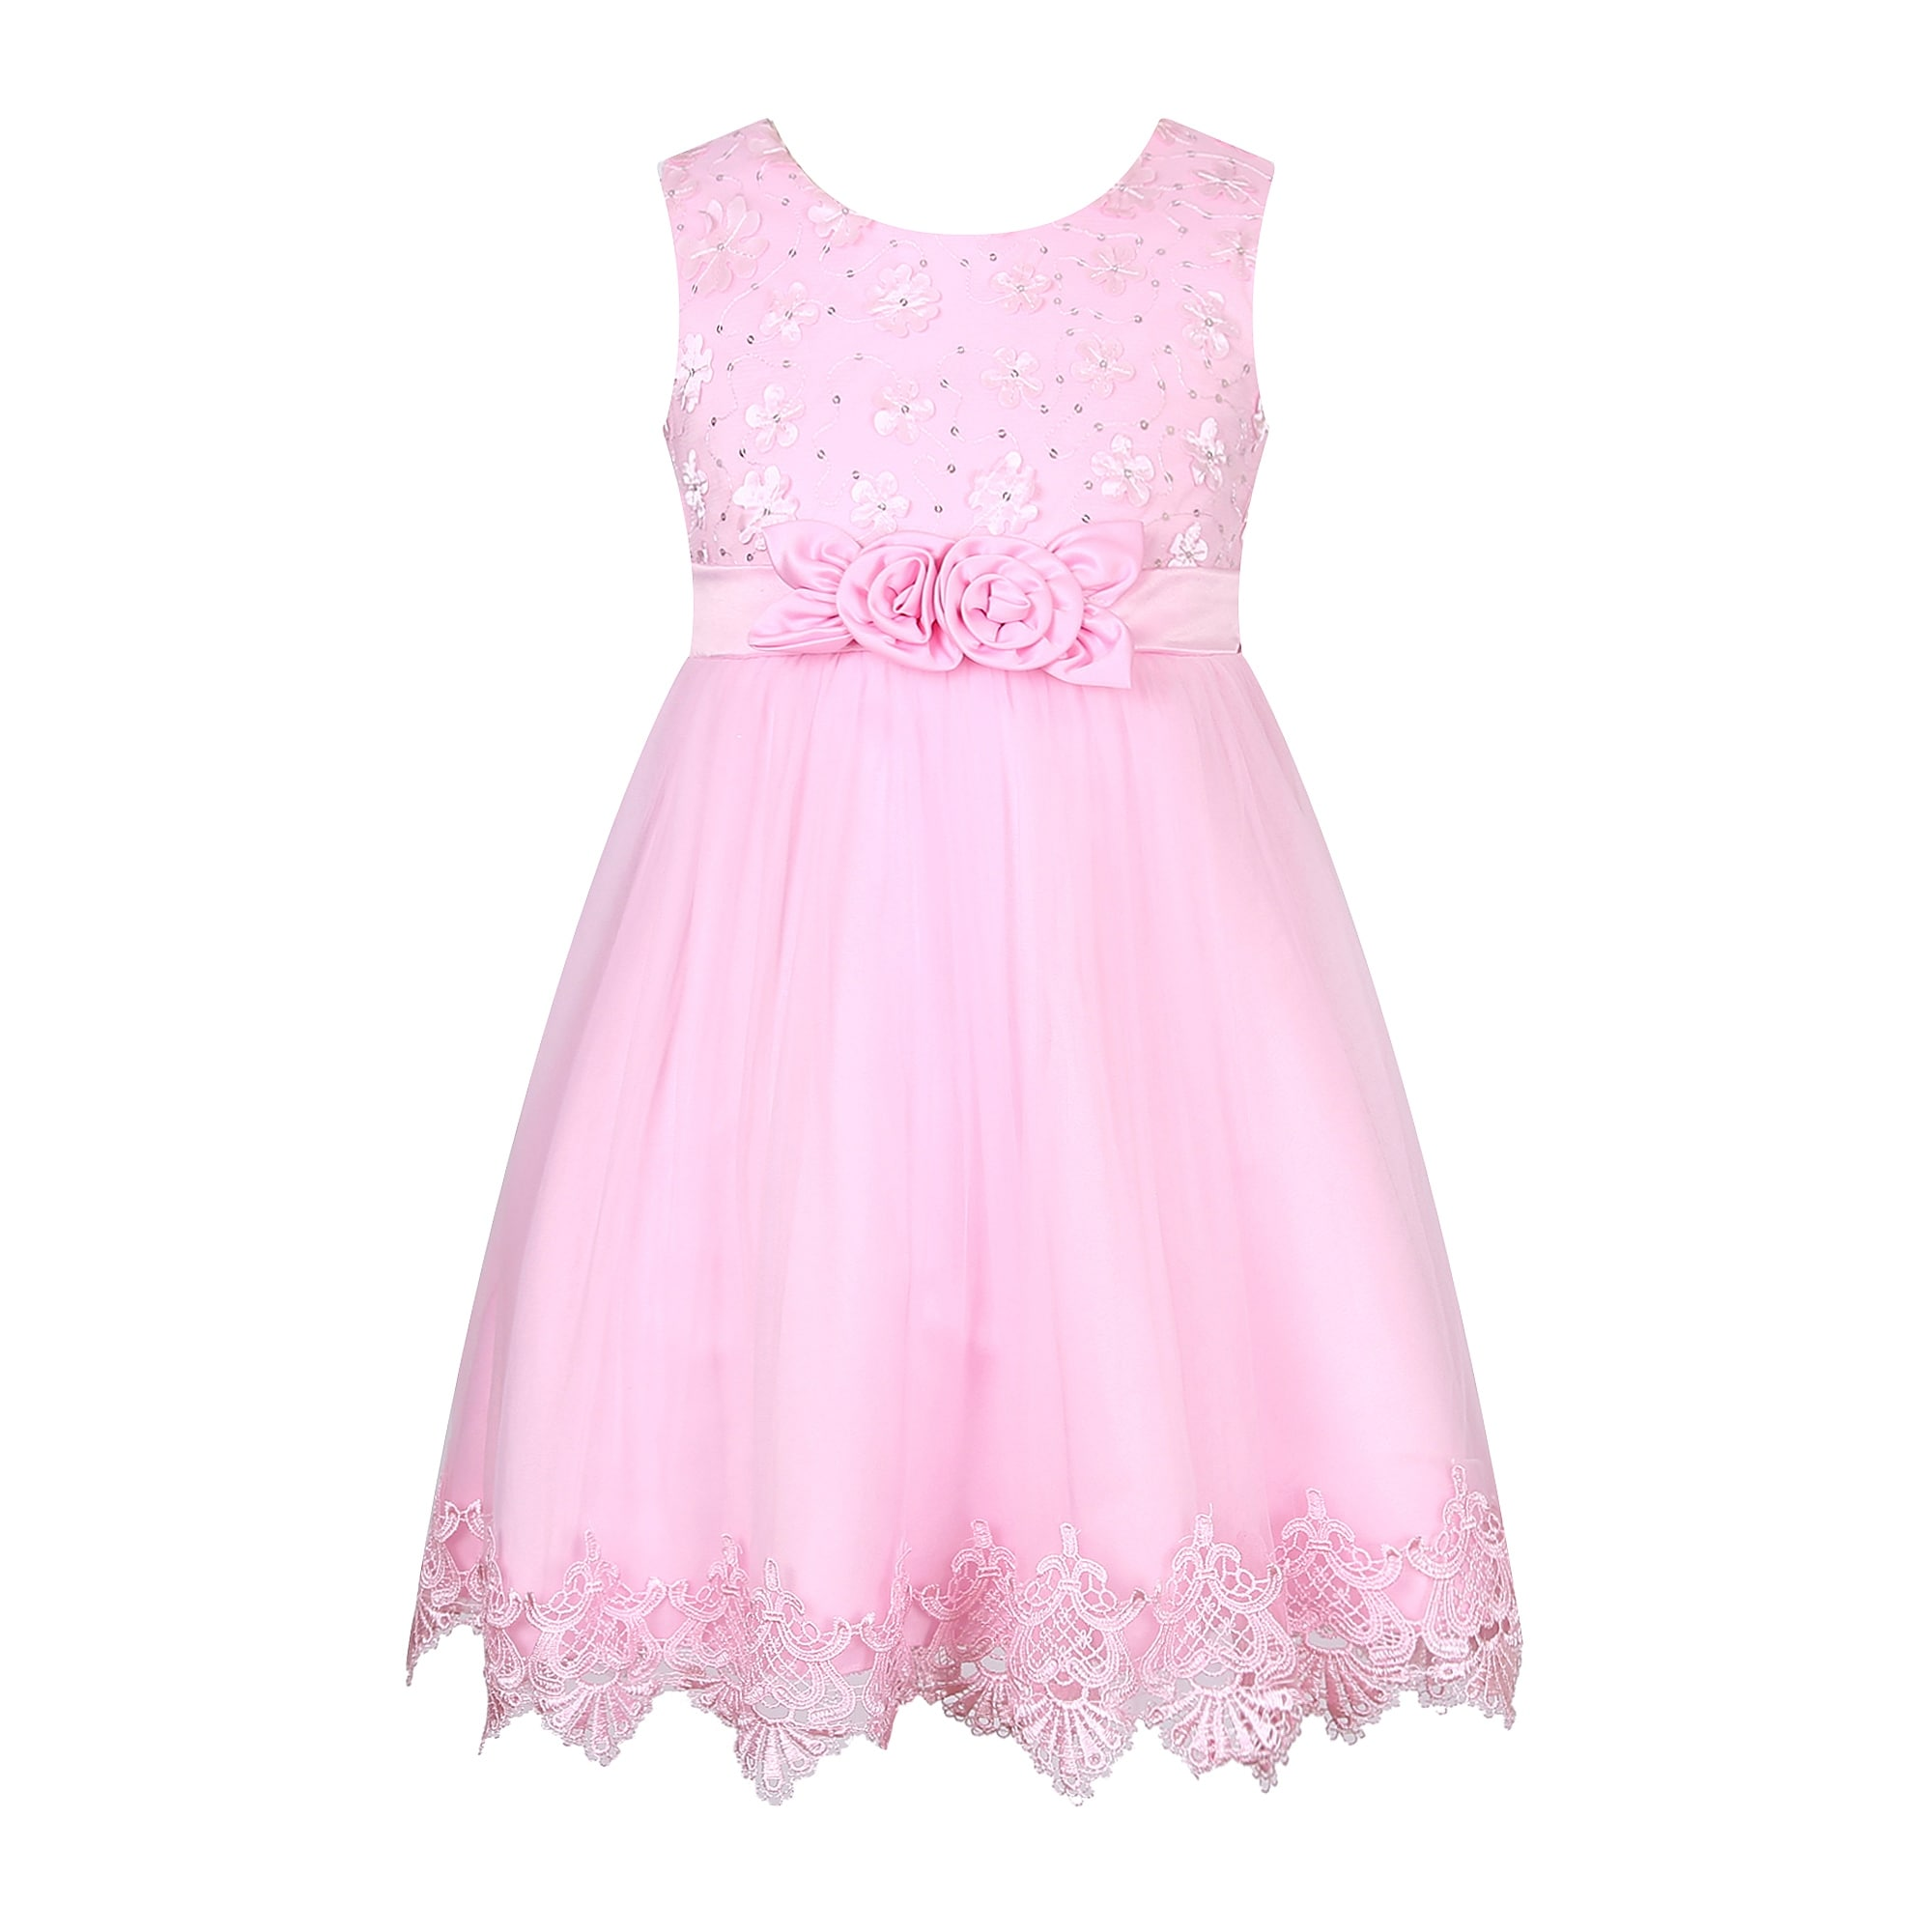 9672e6d1dae00 Buy Pink Girls' Dresses Online at Overstock | Our Best Girls' Clothing Deals